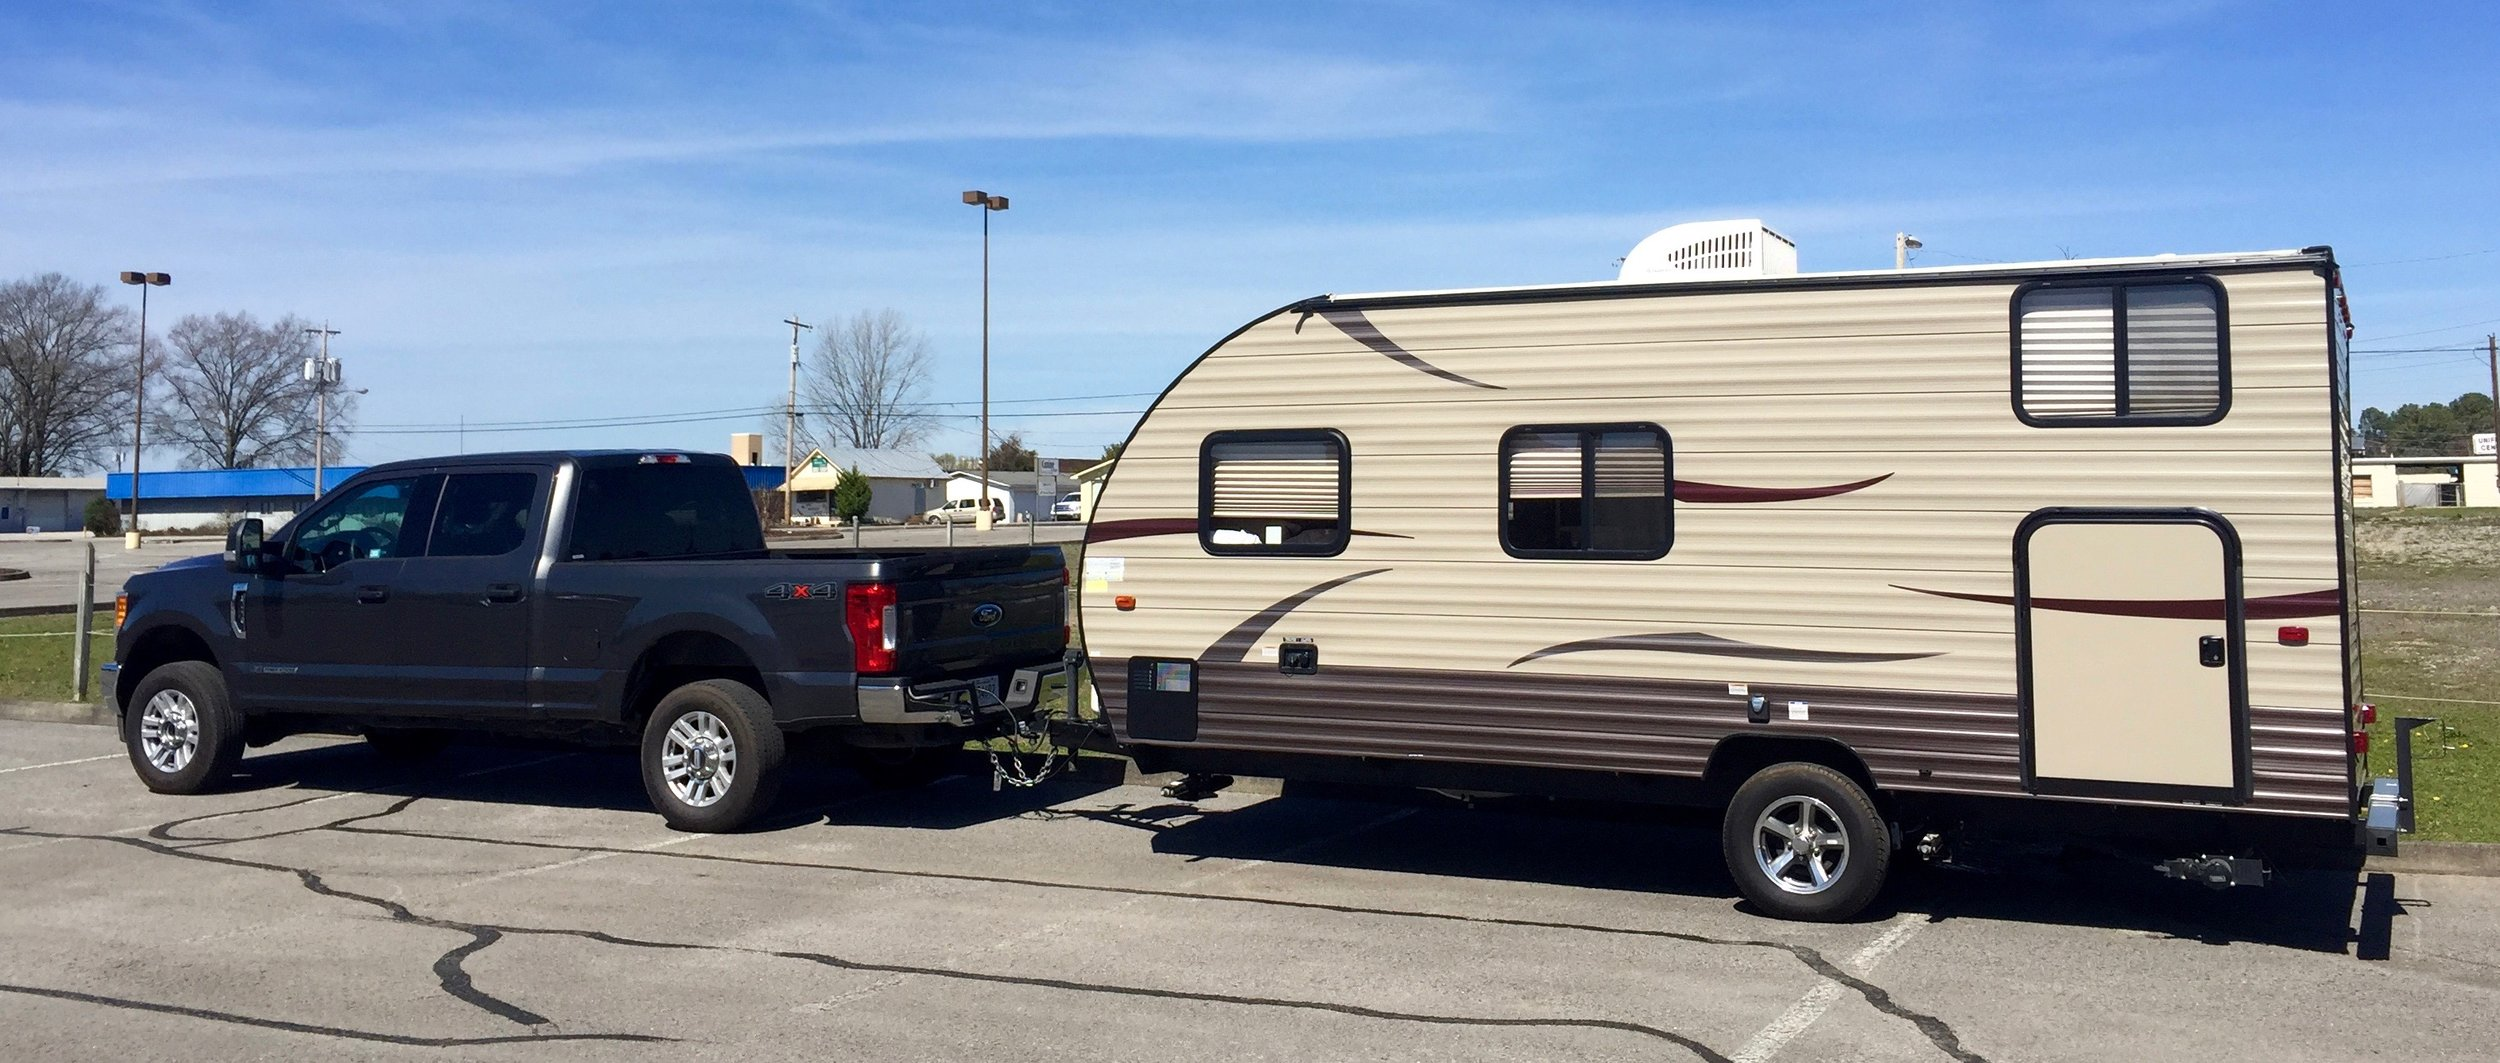 The mismatched truck/trailer rig we rented for 10 days.